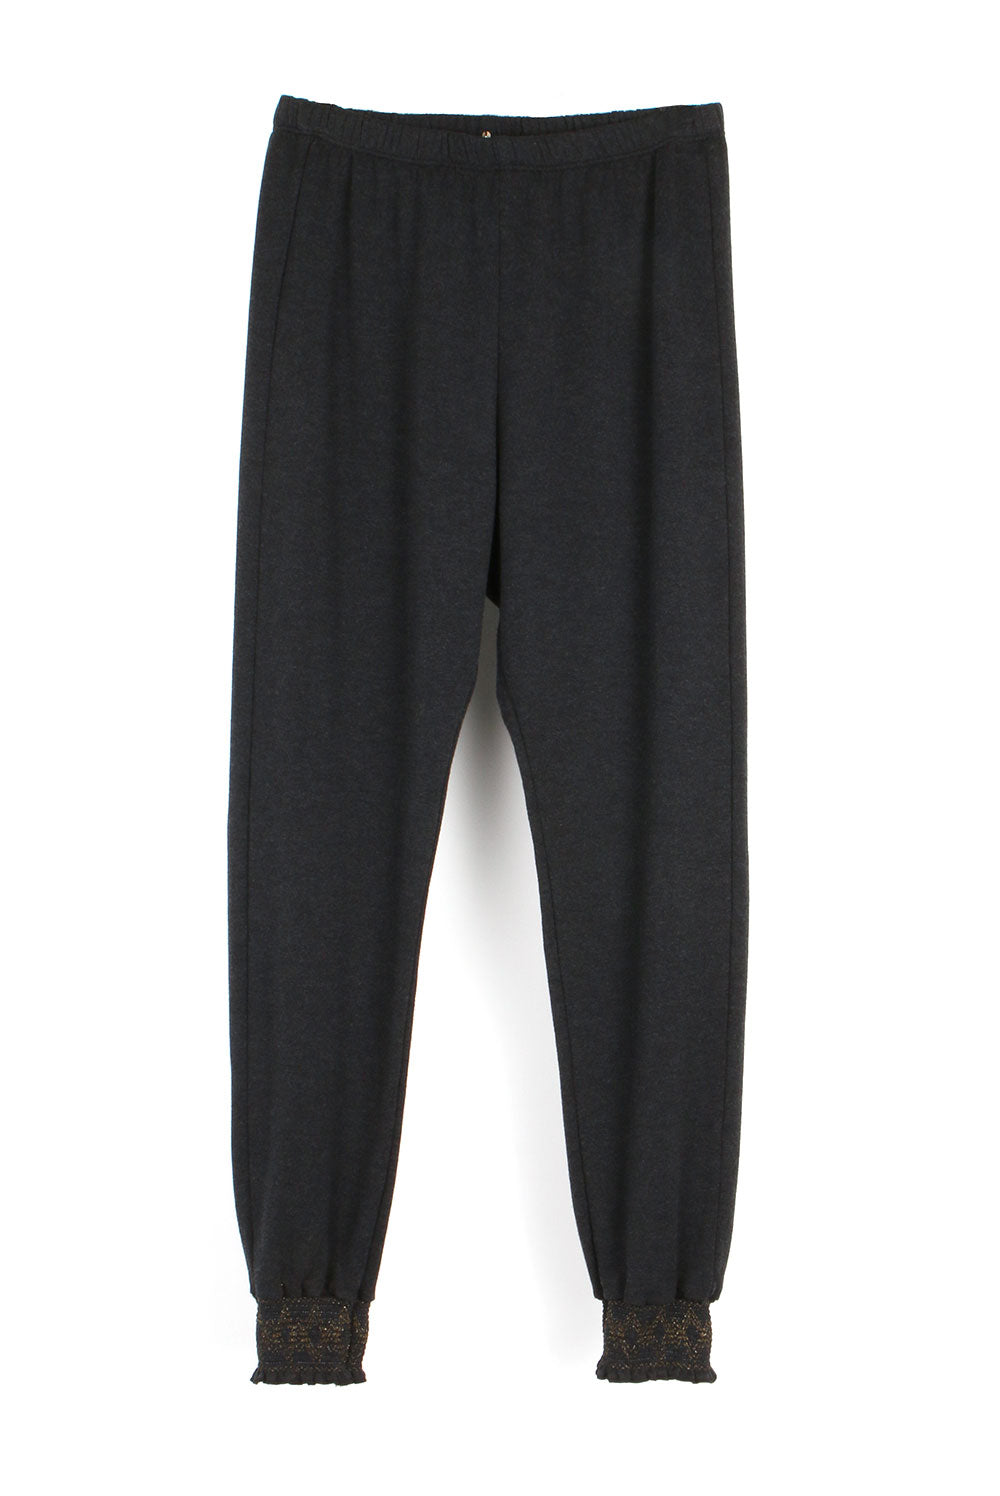 Harper Black Sweatpants